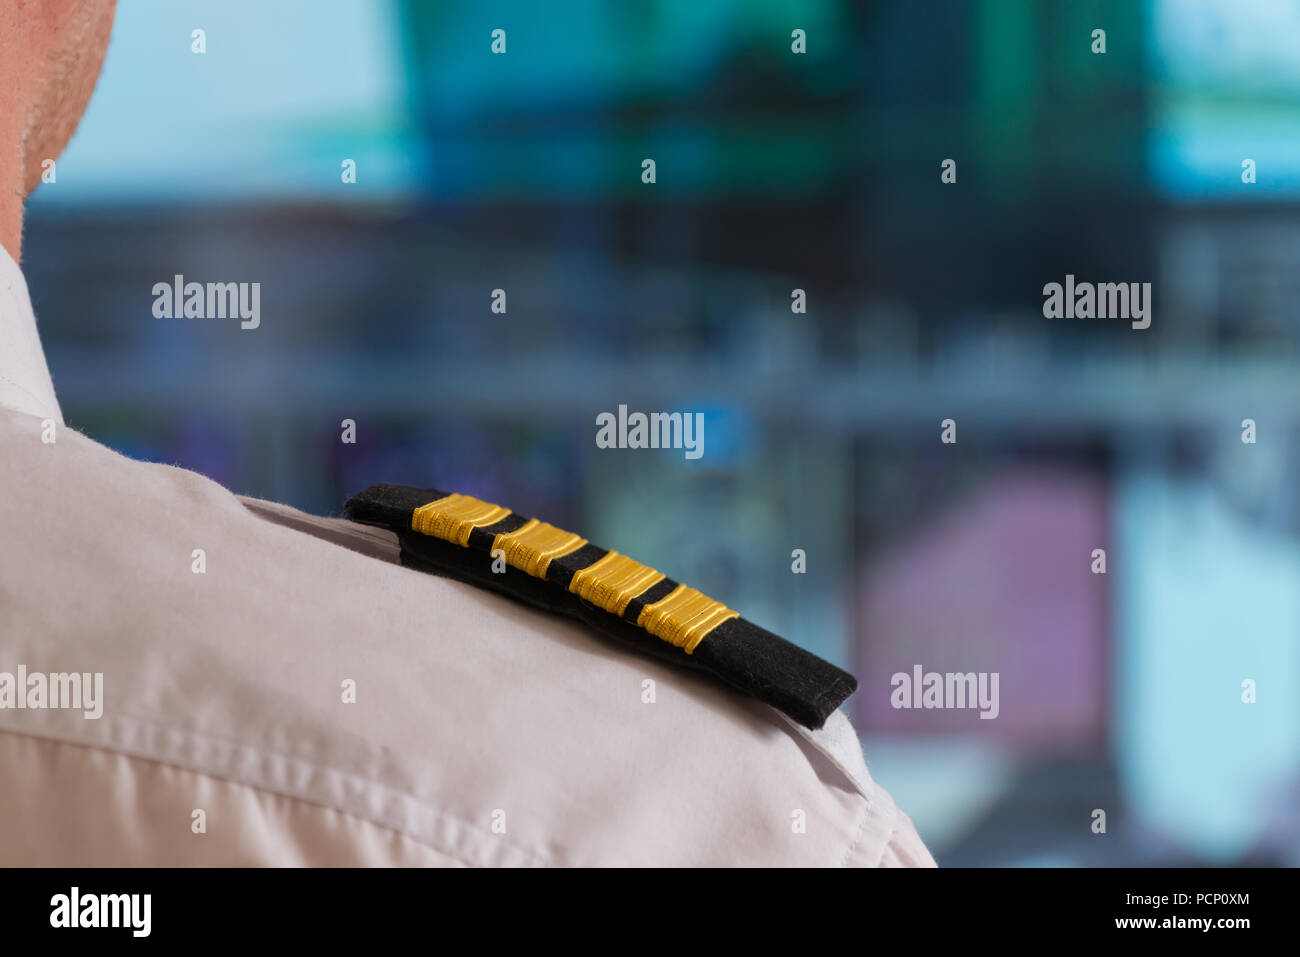 Close up of captain's epaulettes in the cockipt of commercial airplane - Stock Image